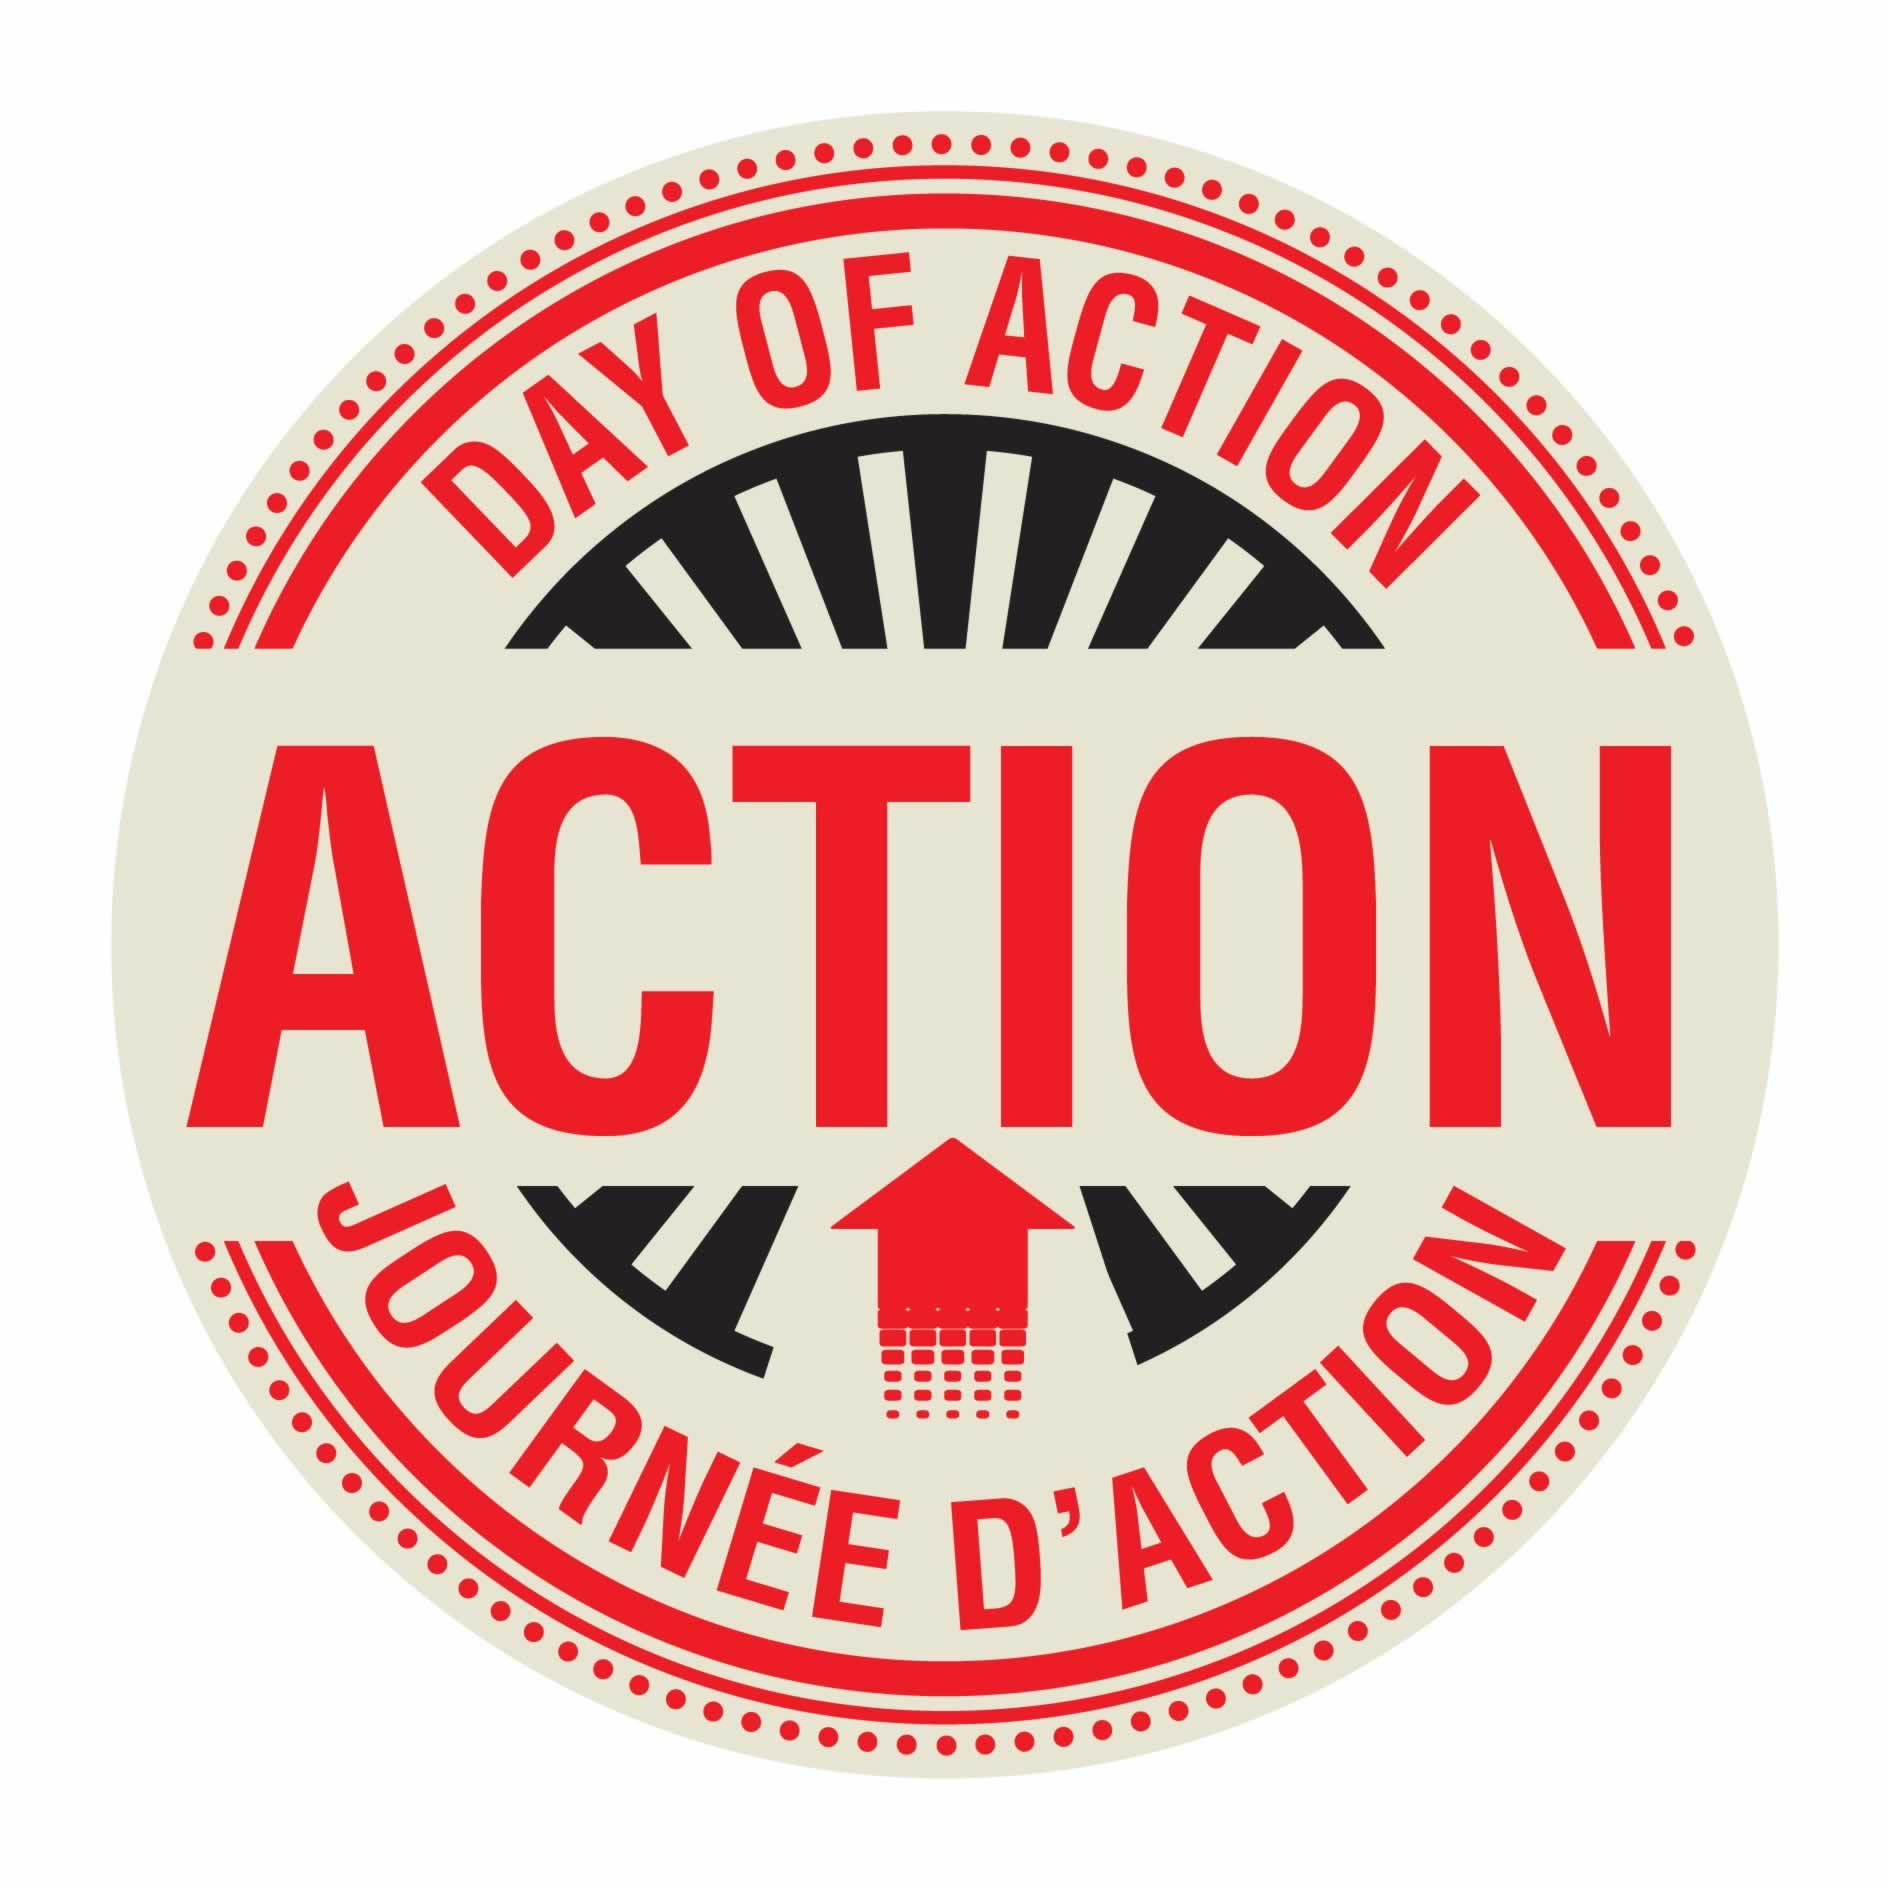 Day of Action - Journee d'action